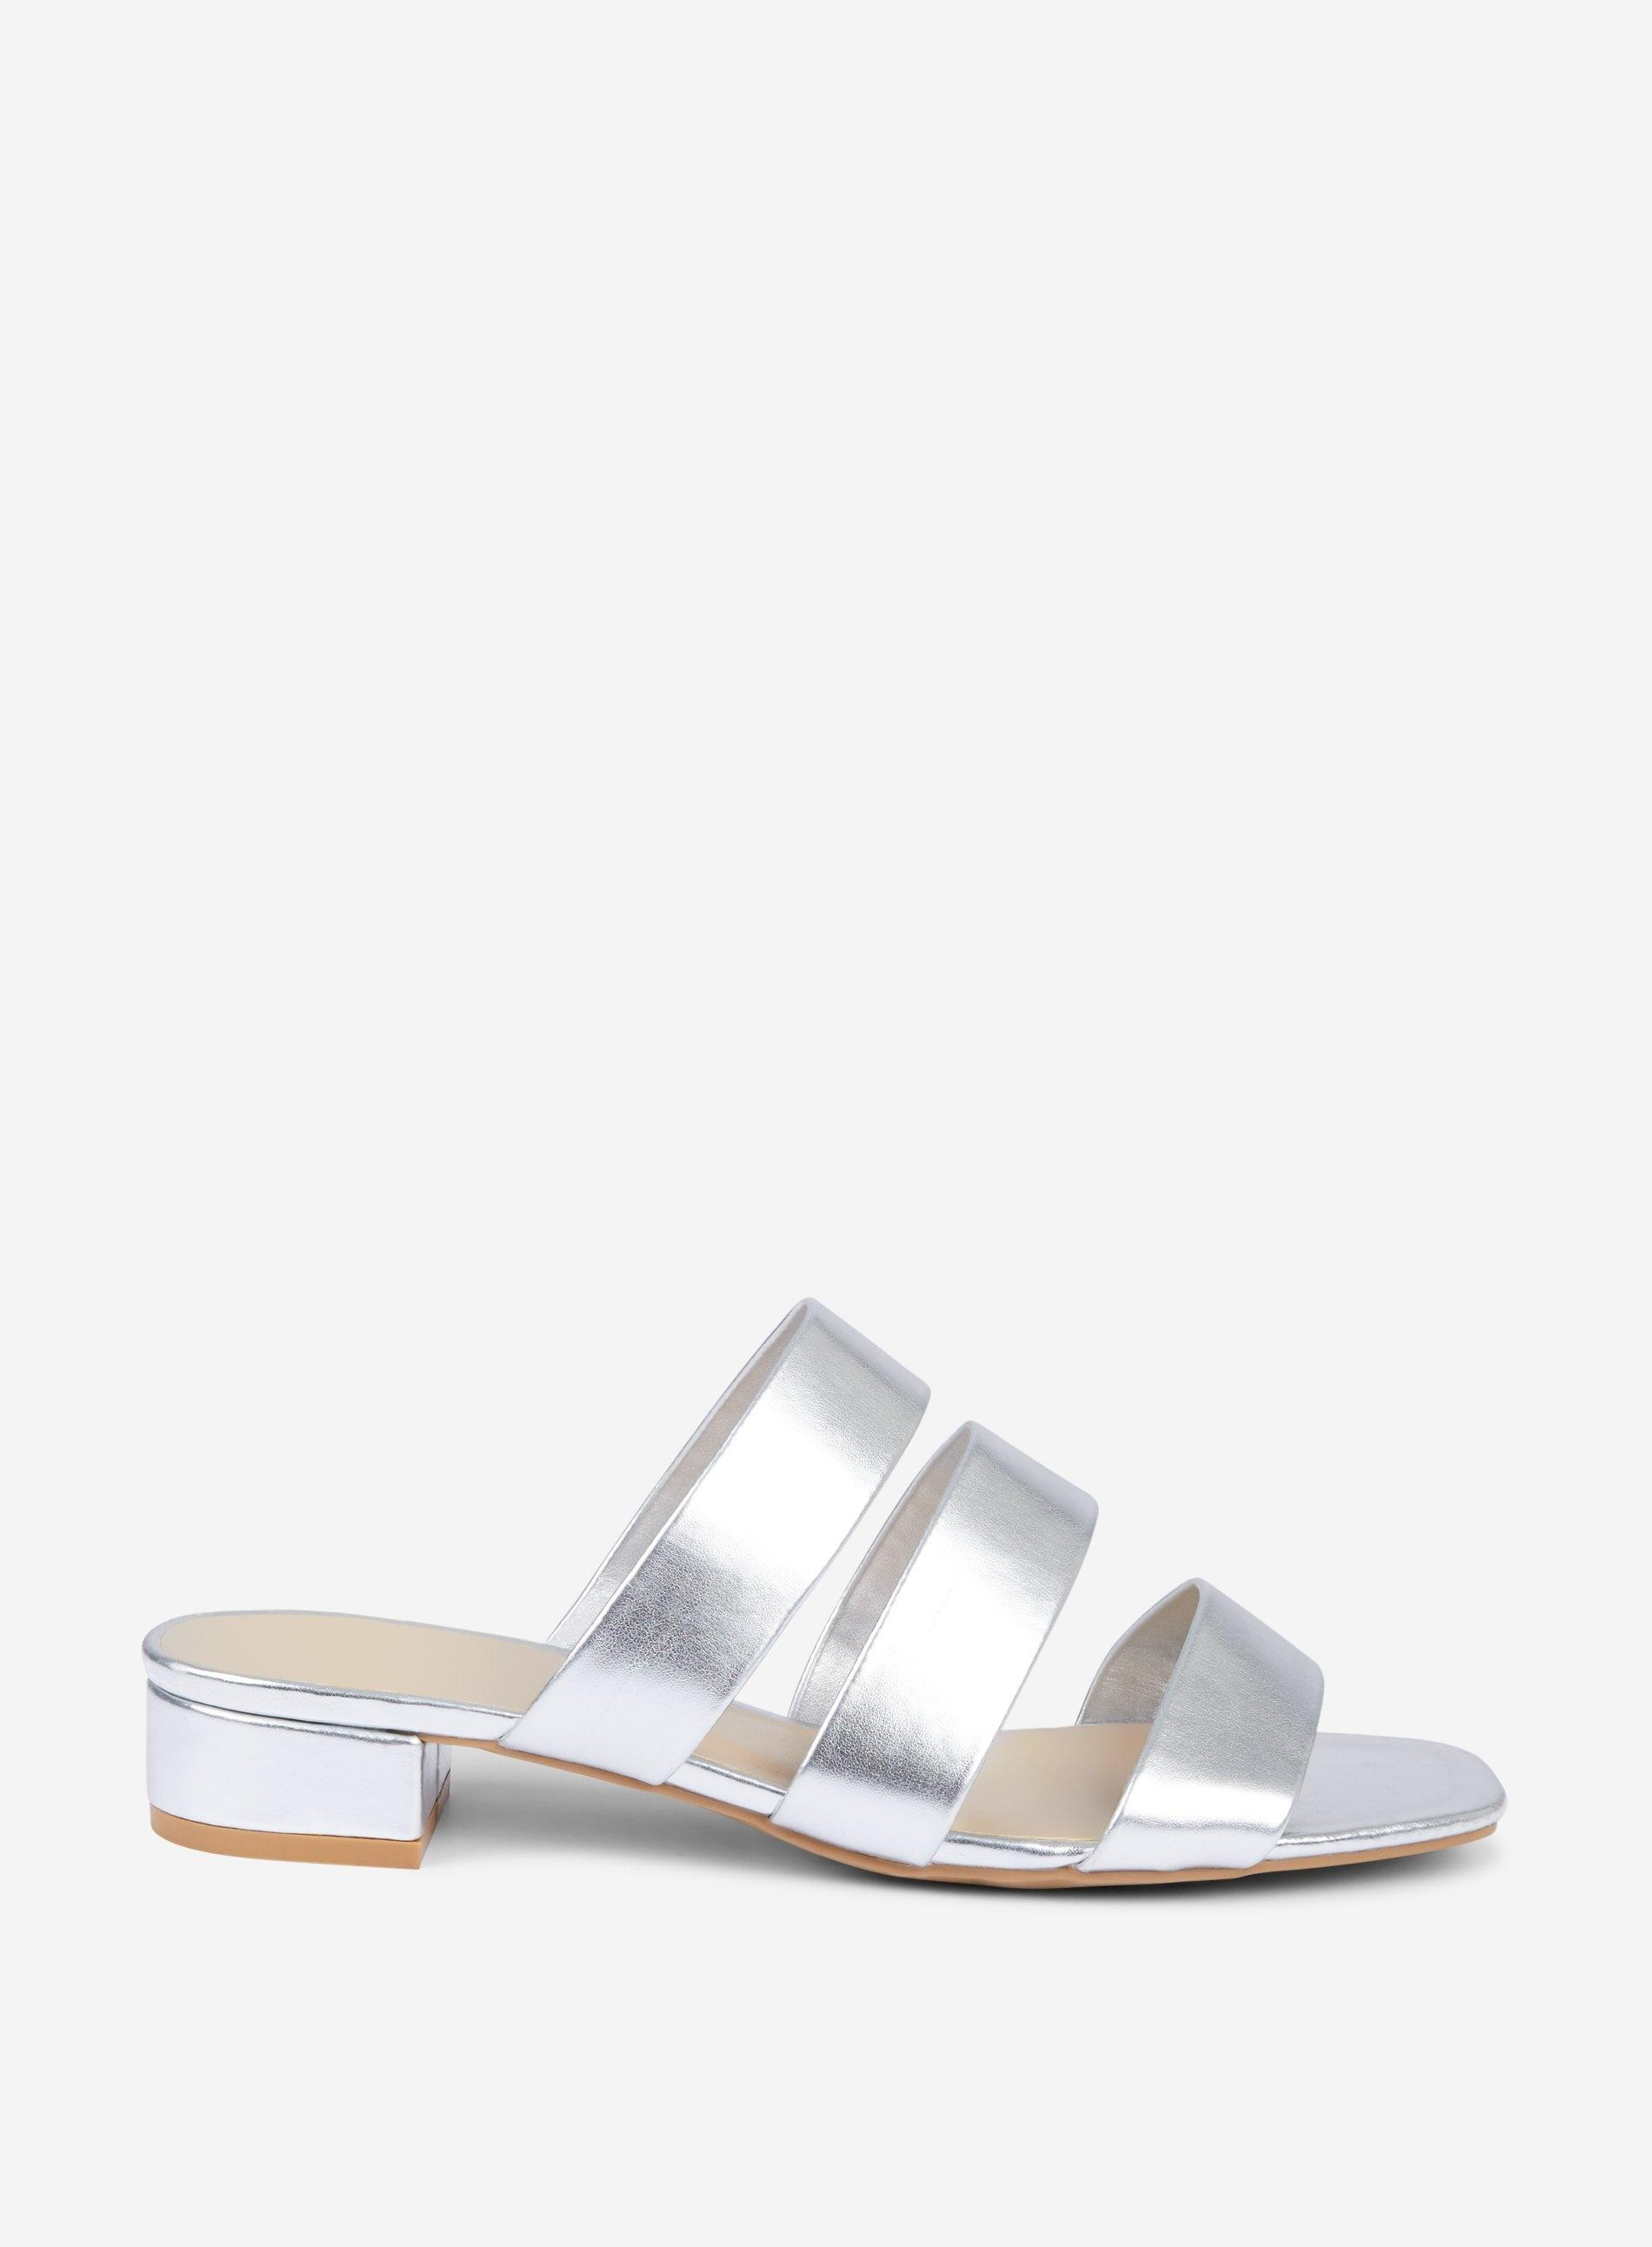 934f80205d1f Lyst - Dorothy Perkins Wide Fit Silver Stormy Sandals in Metallic